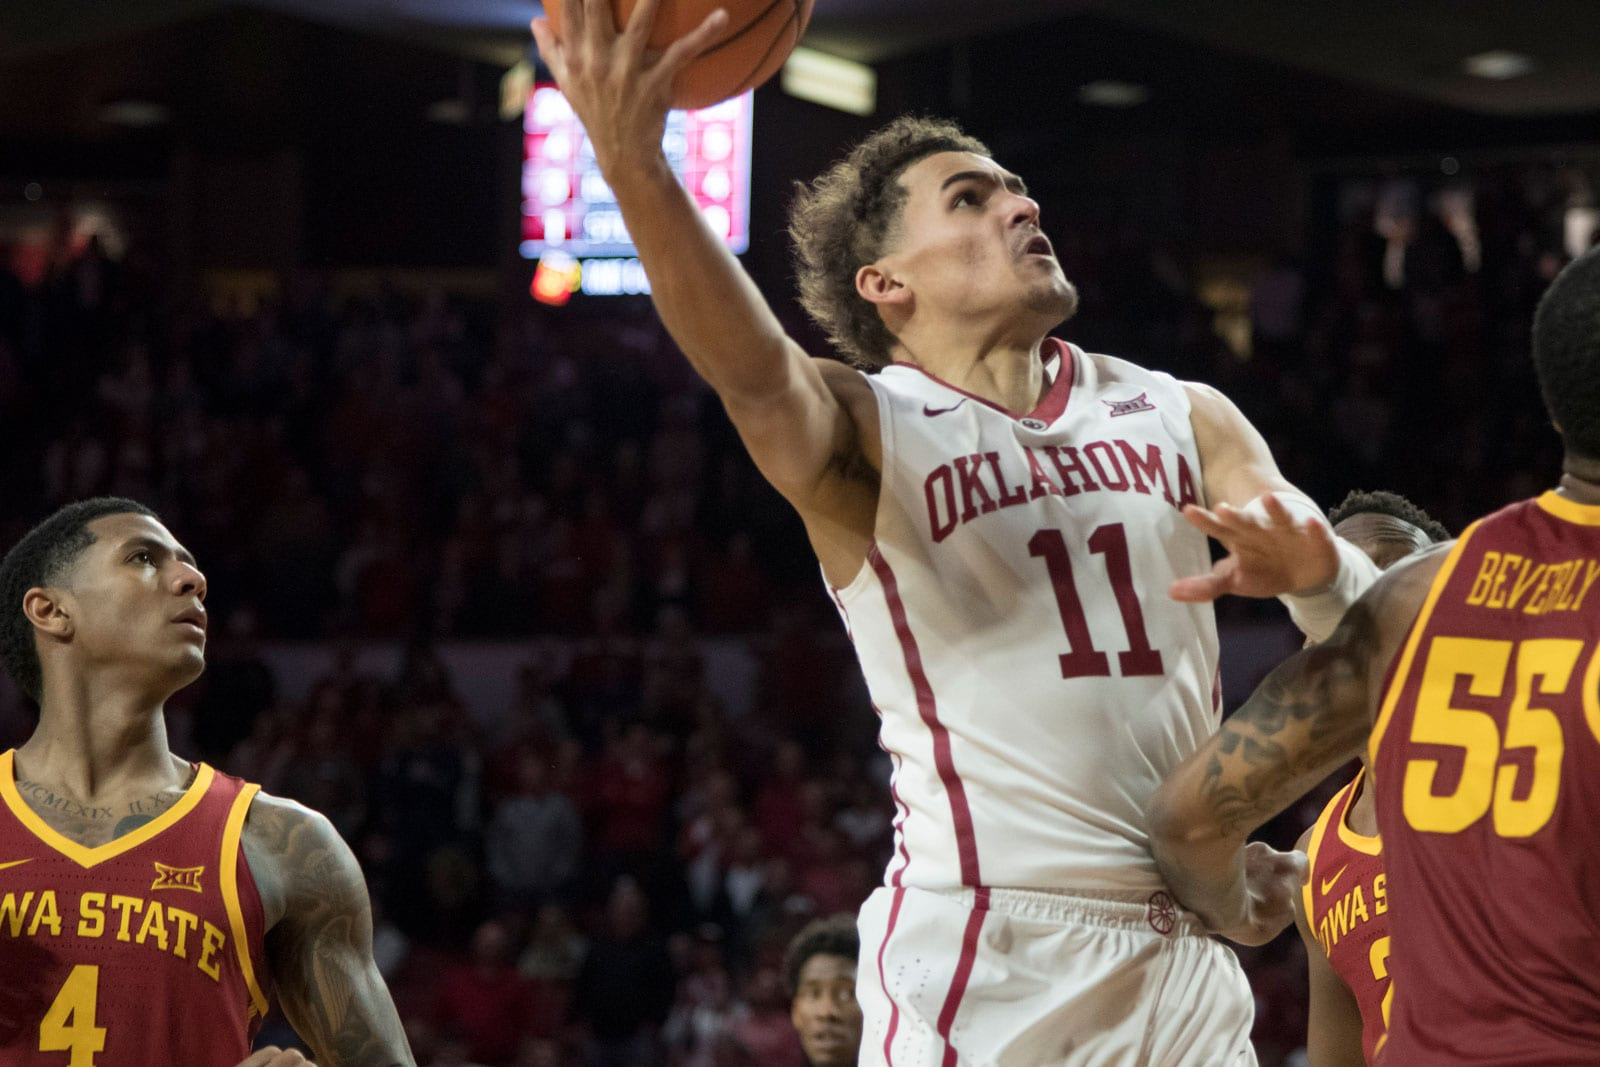 Oklahoma Sooners guard Trae Young #11 shoots over an Iowa State player during the second half of a NCAA college basketball game at the Lloyd Noble Center on March 2, 2018 in Norman, Oklahoma.